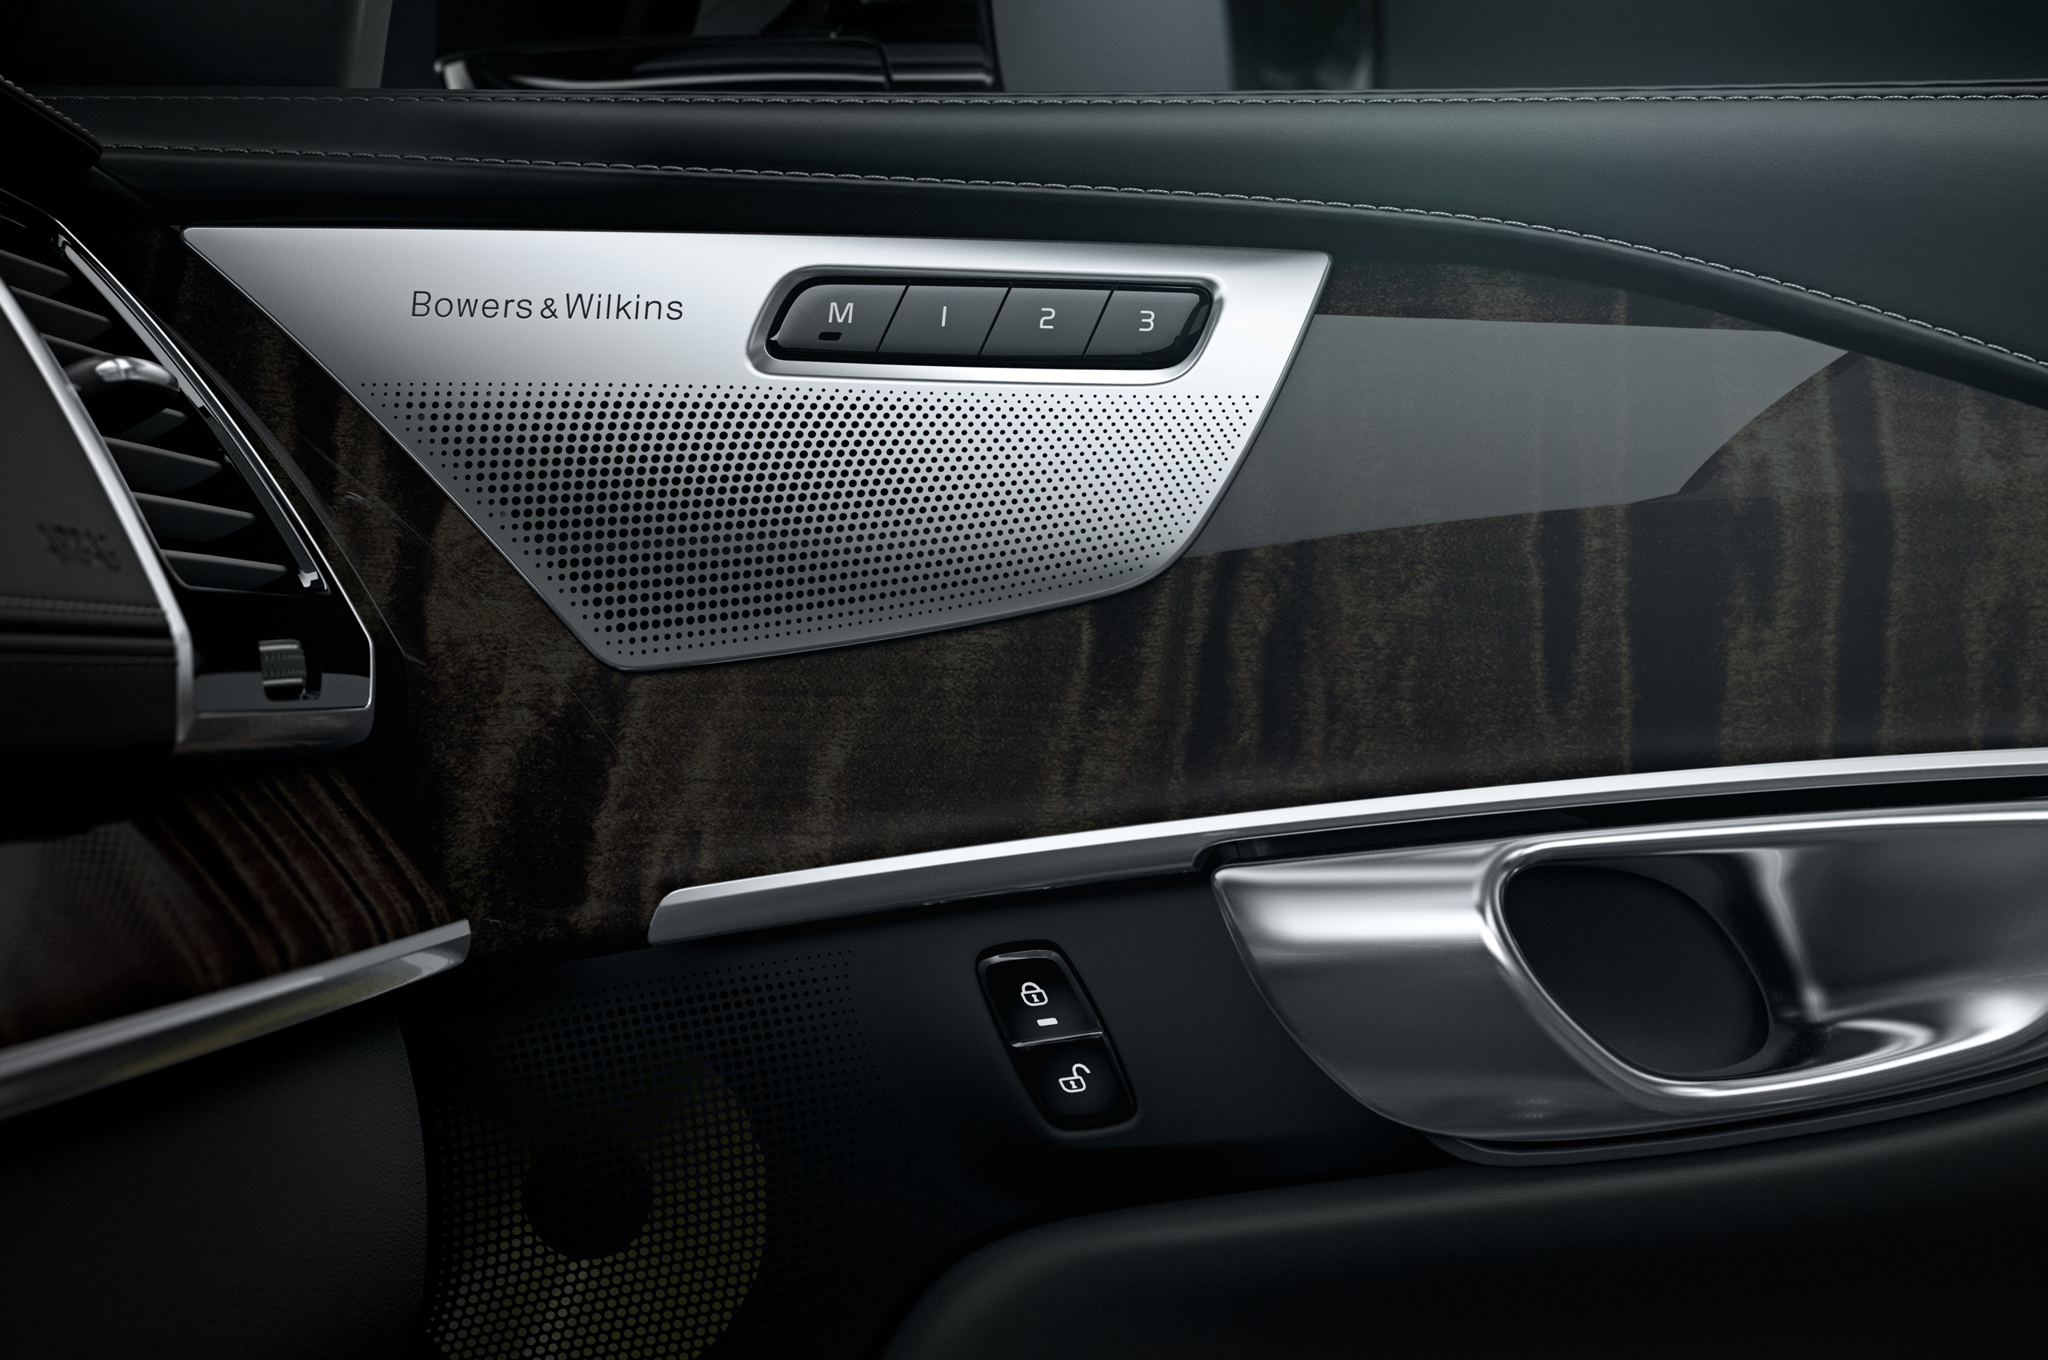 2015 Volvo Xc90 Bowers And Wilkins Speaker On Door Panel Photo 16